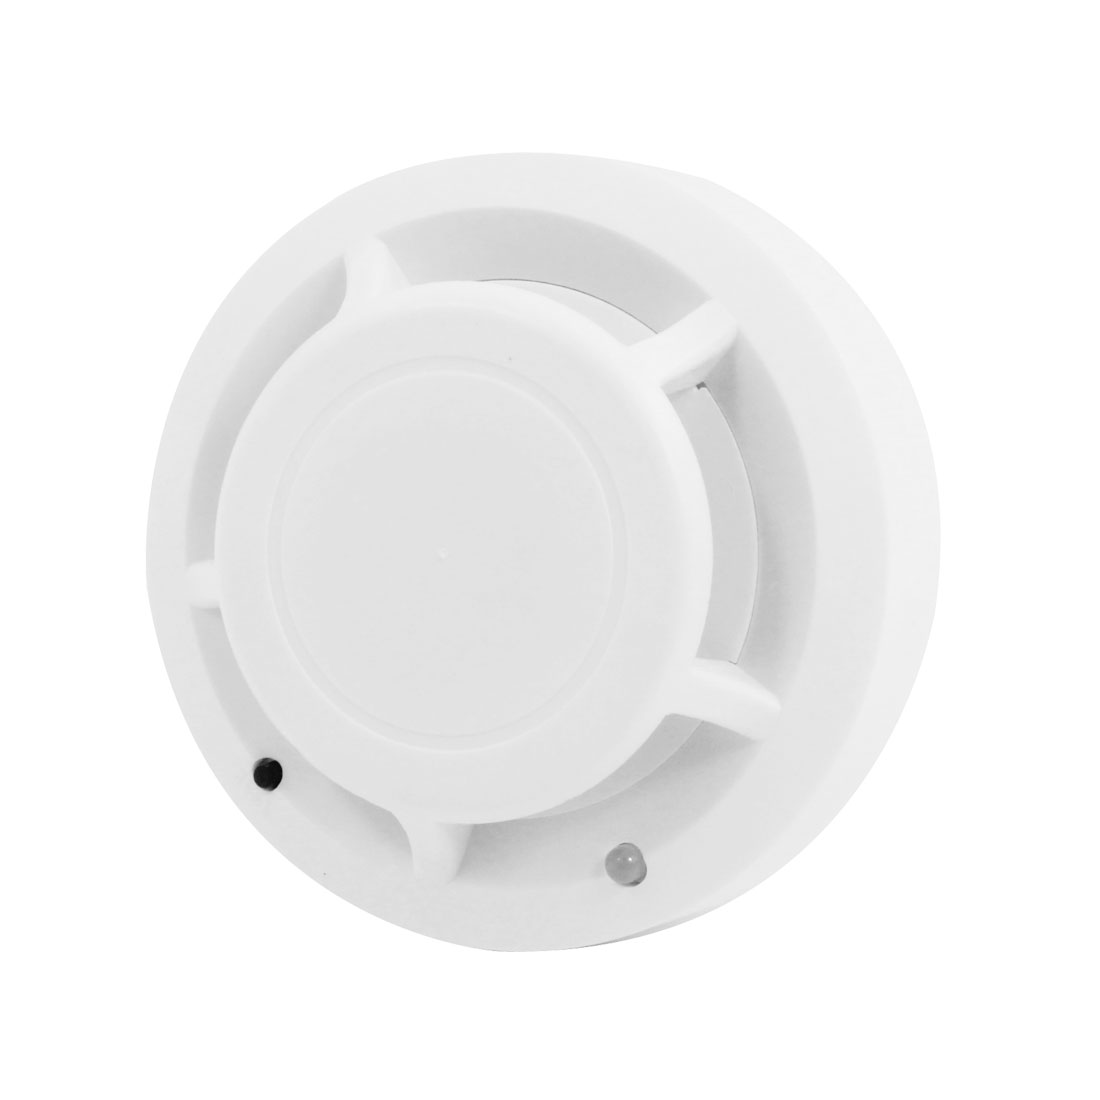 Photoelectric Wireless Smoke Detector Sensor Fire Alarm 10.5 x 5.5cm